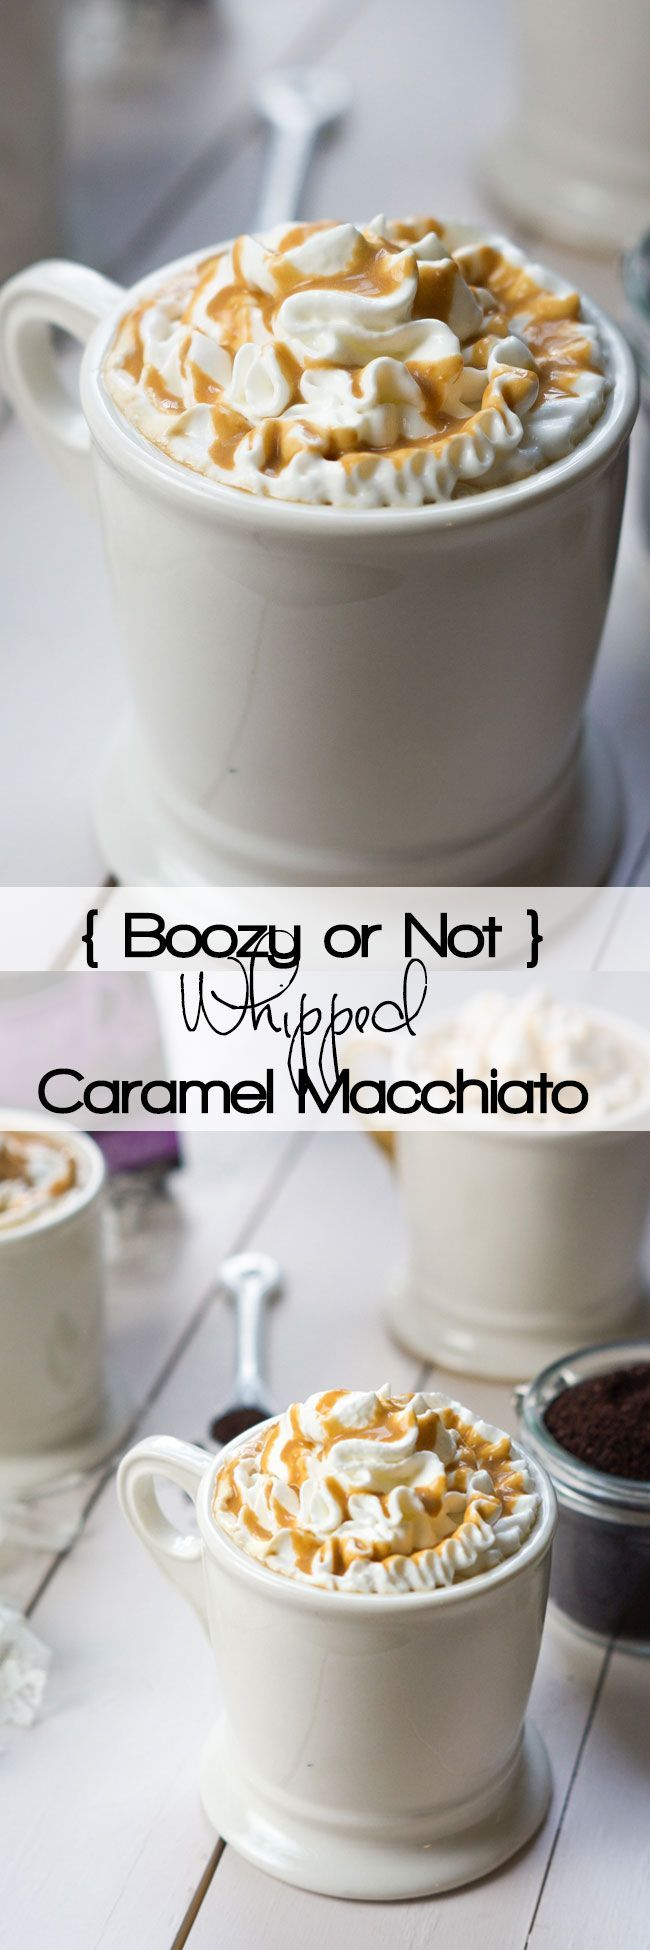 Whipped Caramel Macchiato is a combination of creamy